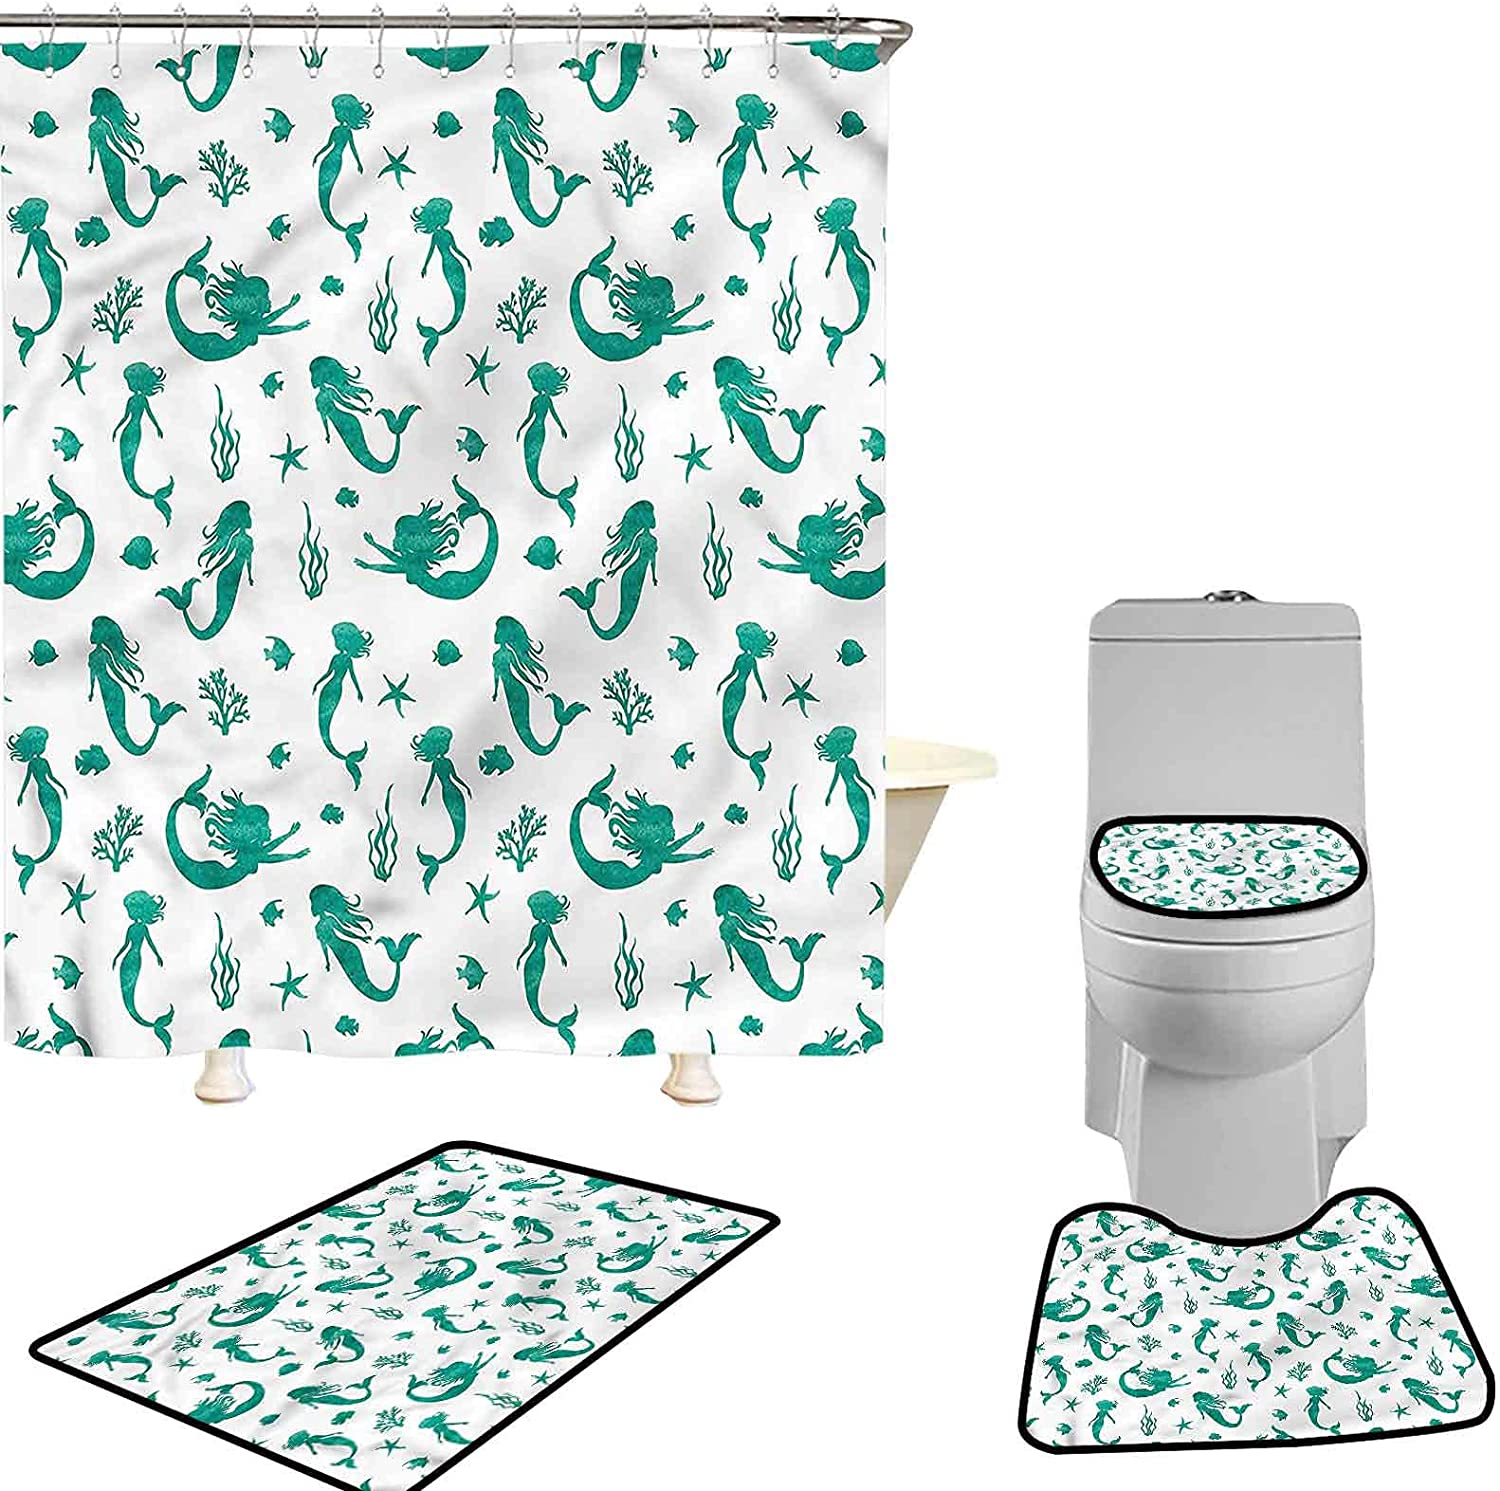 Hiiiman Shower Curtains Sets for Mermaid 4 Sale special price Pcs Watercol Tucson Mall Bathroom